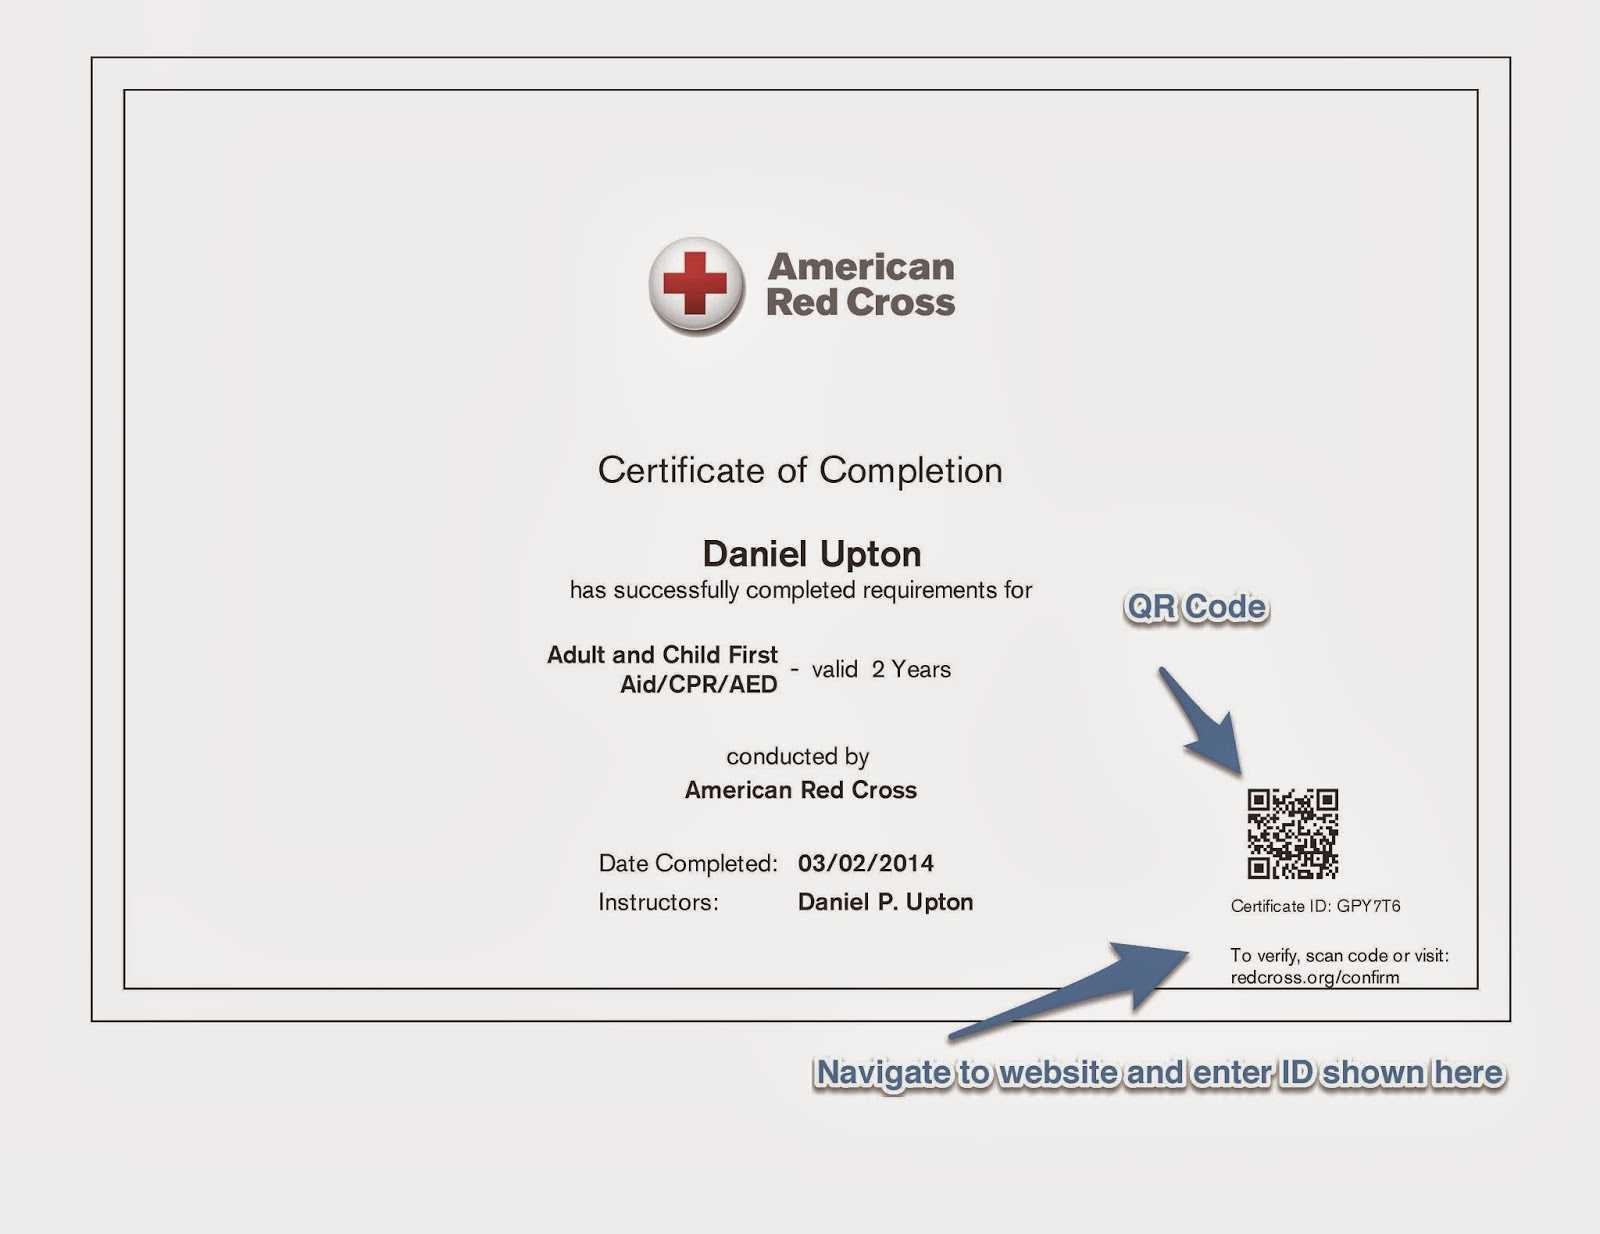 American Red Cross Cpr Card Template ] - Aha Training Center Throughout Cpr Card Template